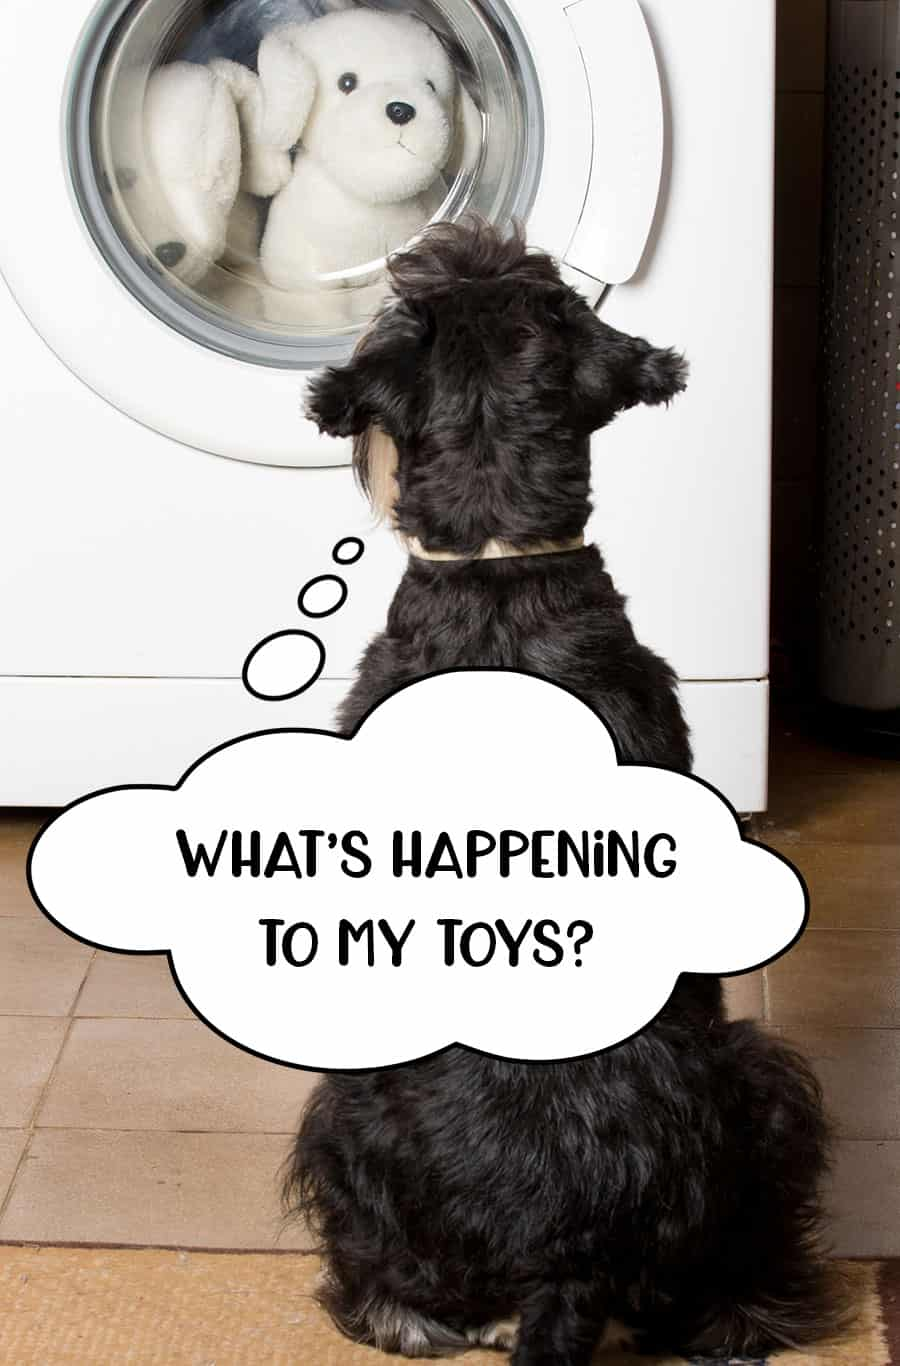 How to wash handmade dog toys. The safe way to clean dog toys especially handmade dog toys that can be delicate. Beat the slobber and dog drool with these helpful dog toy cleaning hacks. Your dog will thank you for their fresh-smelling toy - and so will you! #dogtoys #cleaninghacks #washing